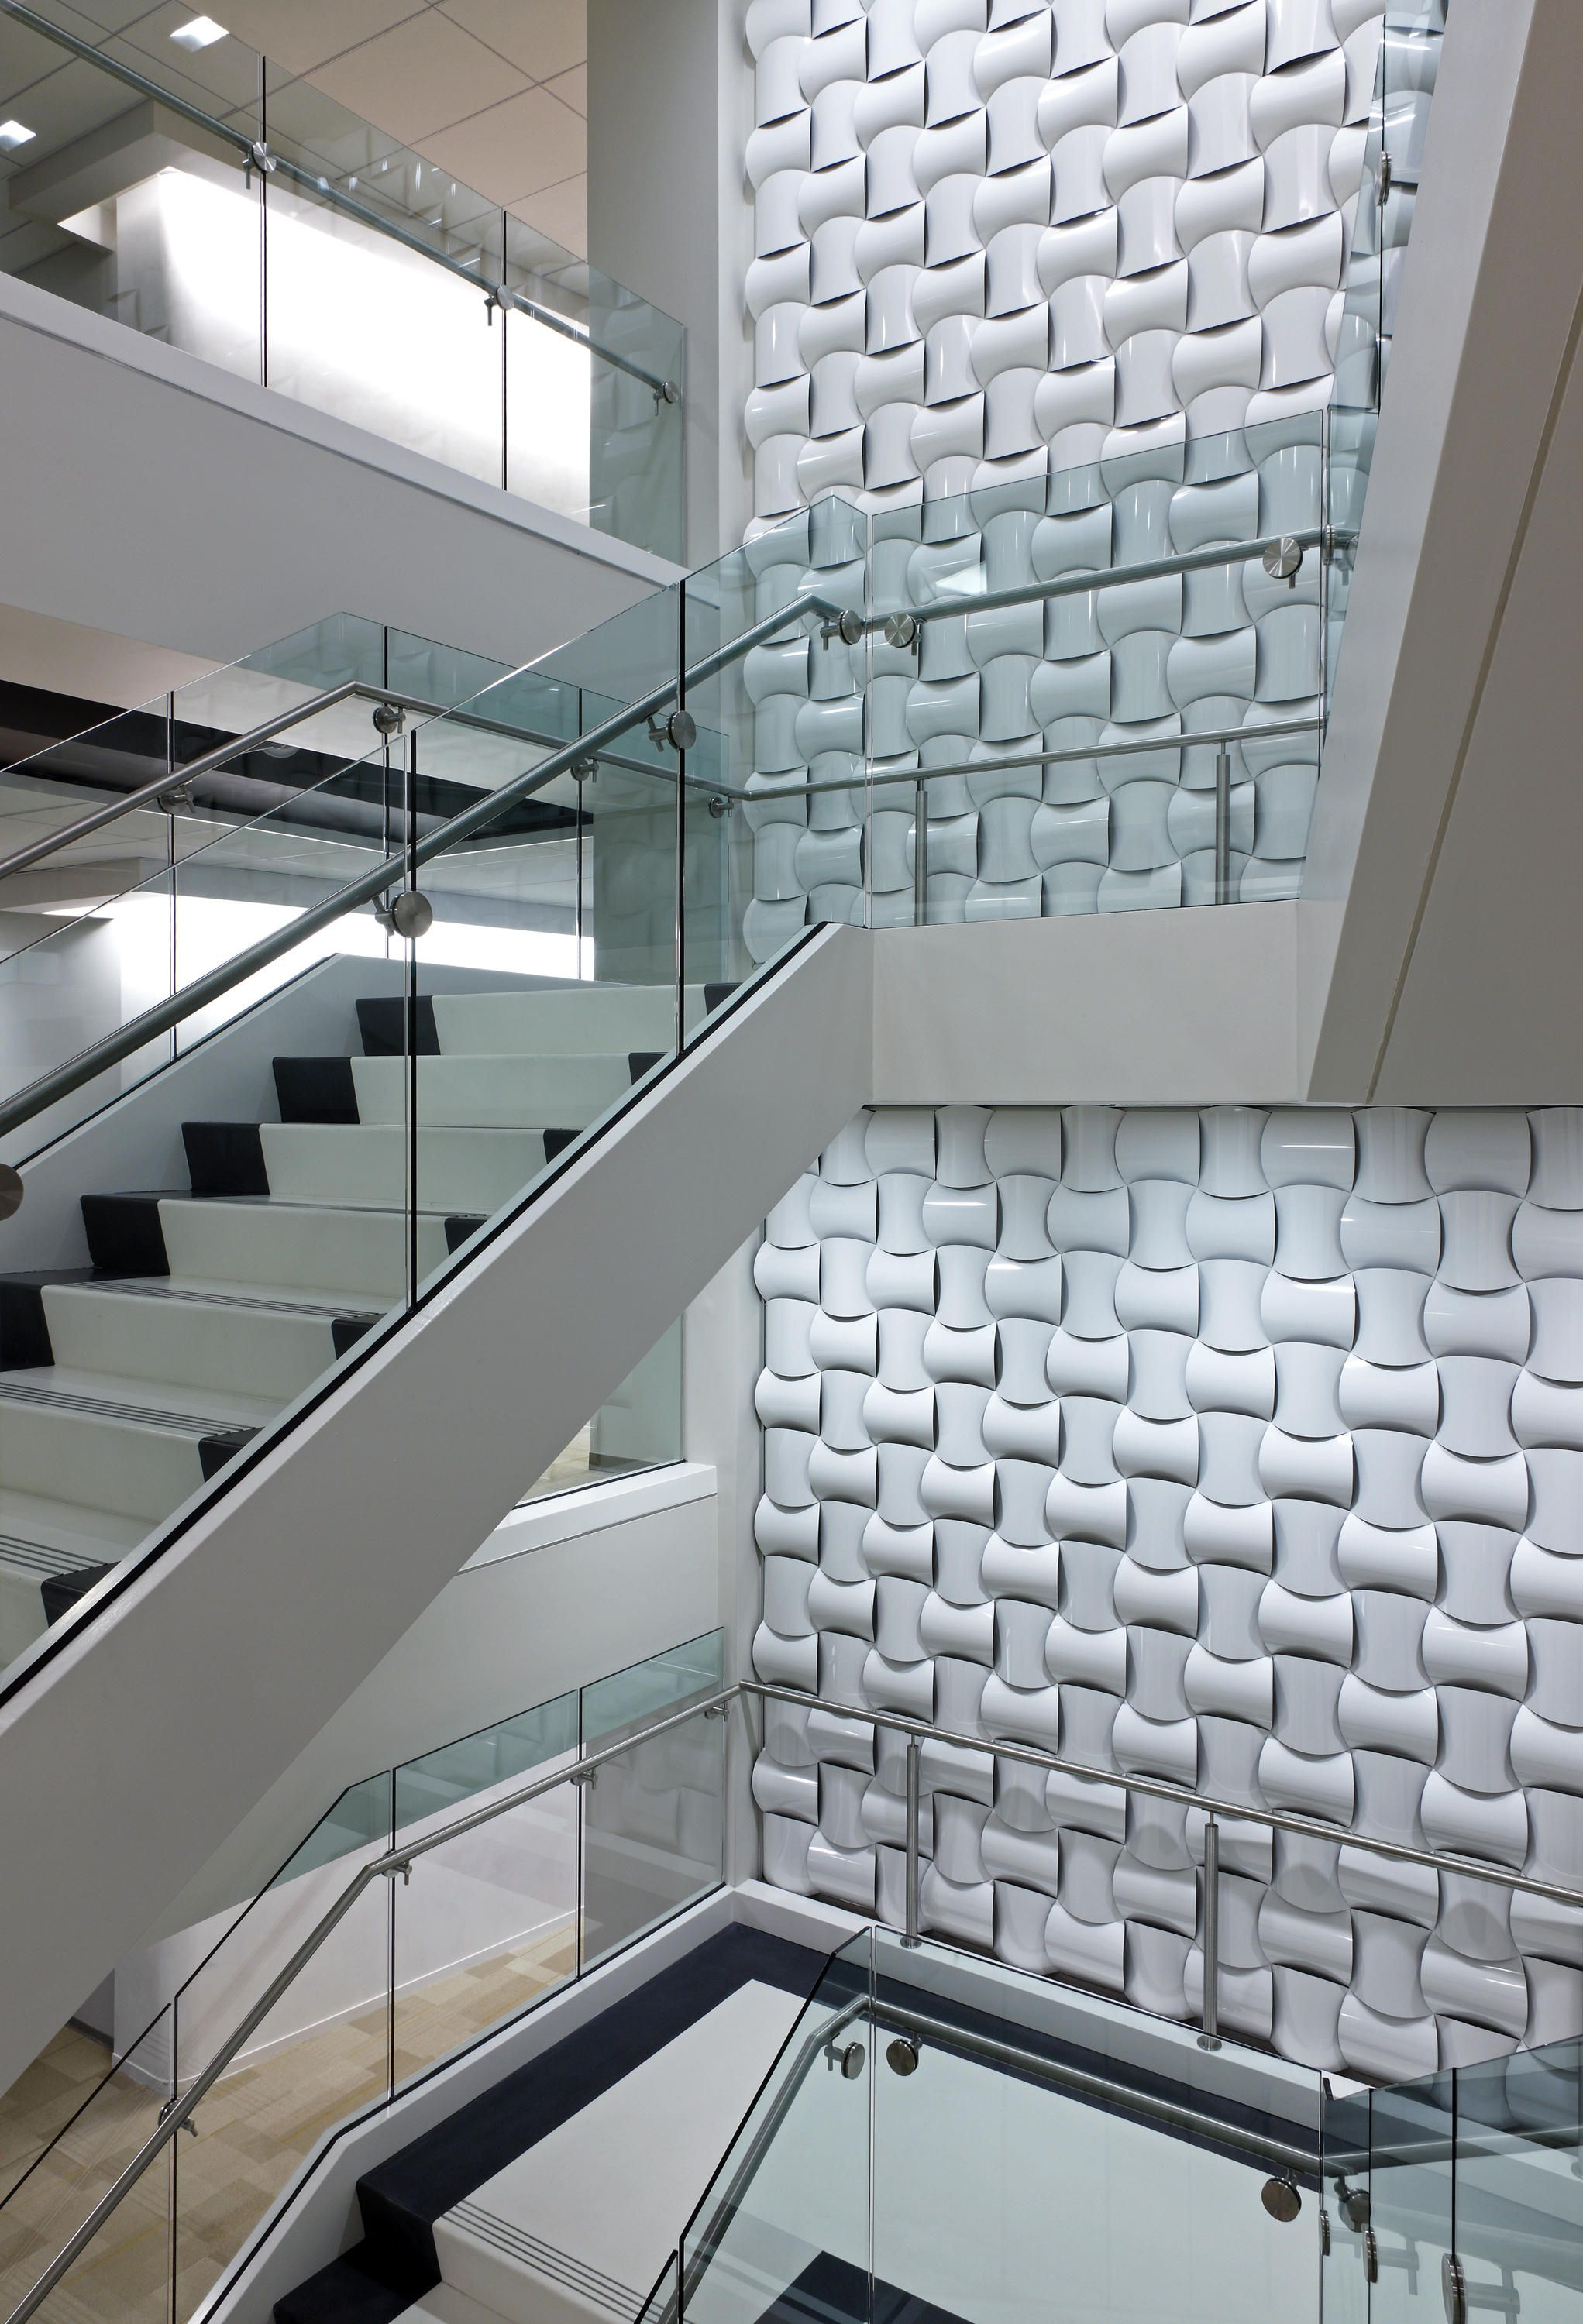 Ceiling tile systems images tile flooring design ideas ceiling tile system gallery tile flooring design ideas wovin wall is a modular wall and ceiling dailygadgetfo Choice Image